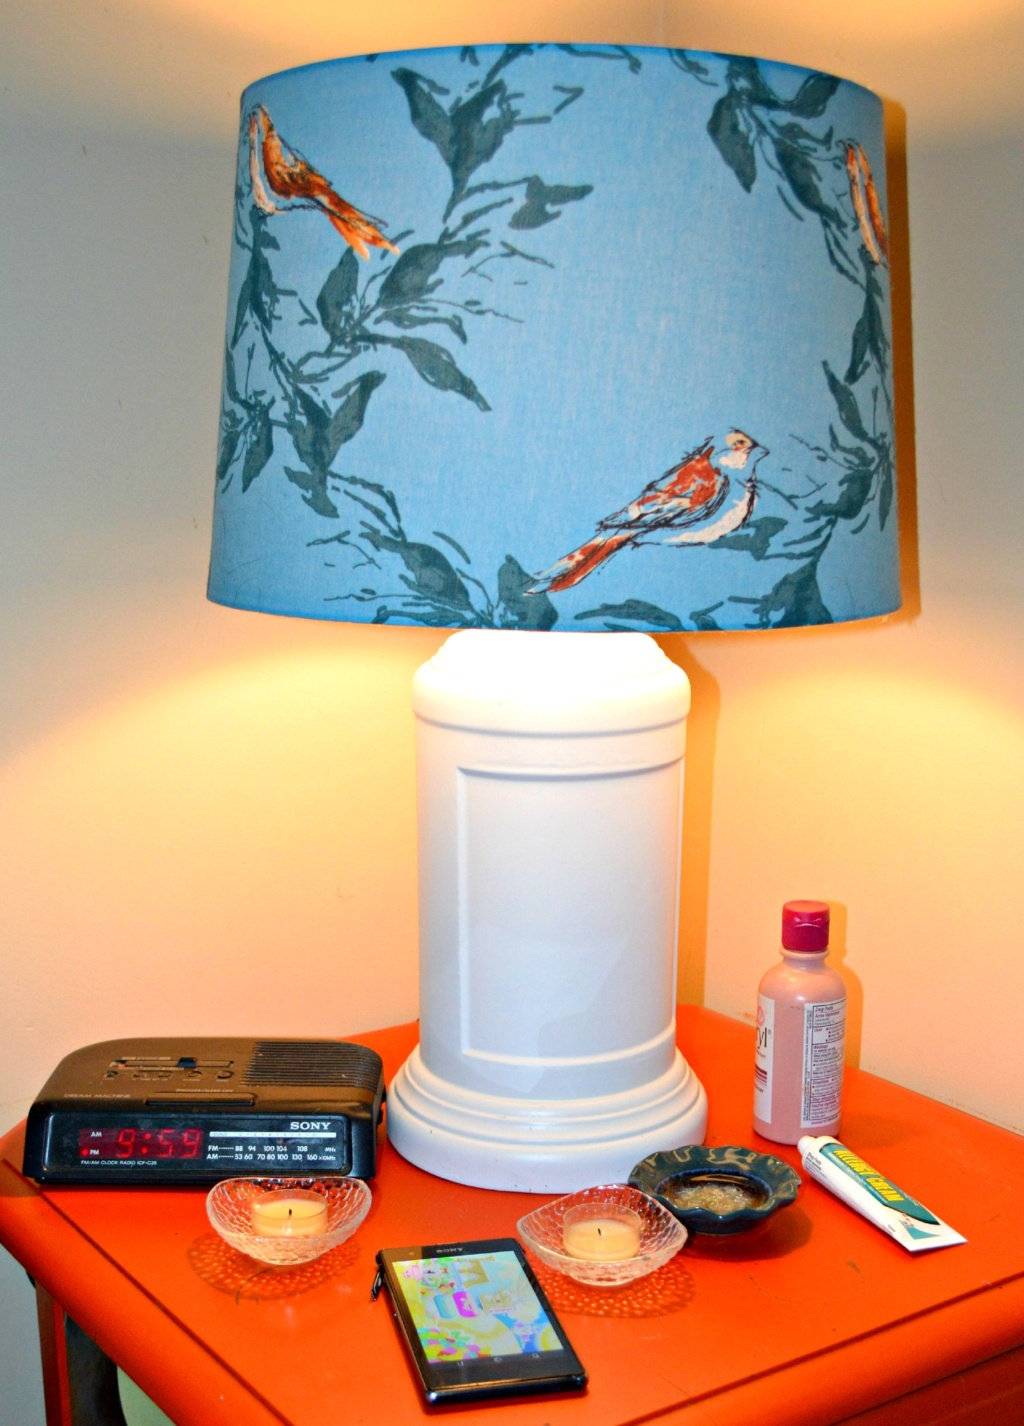 #write31days – Organize theBedside Table